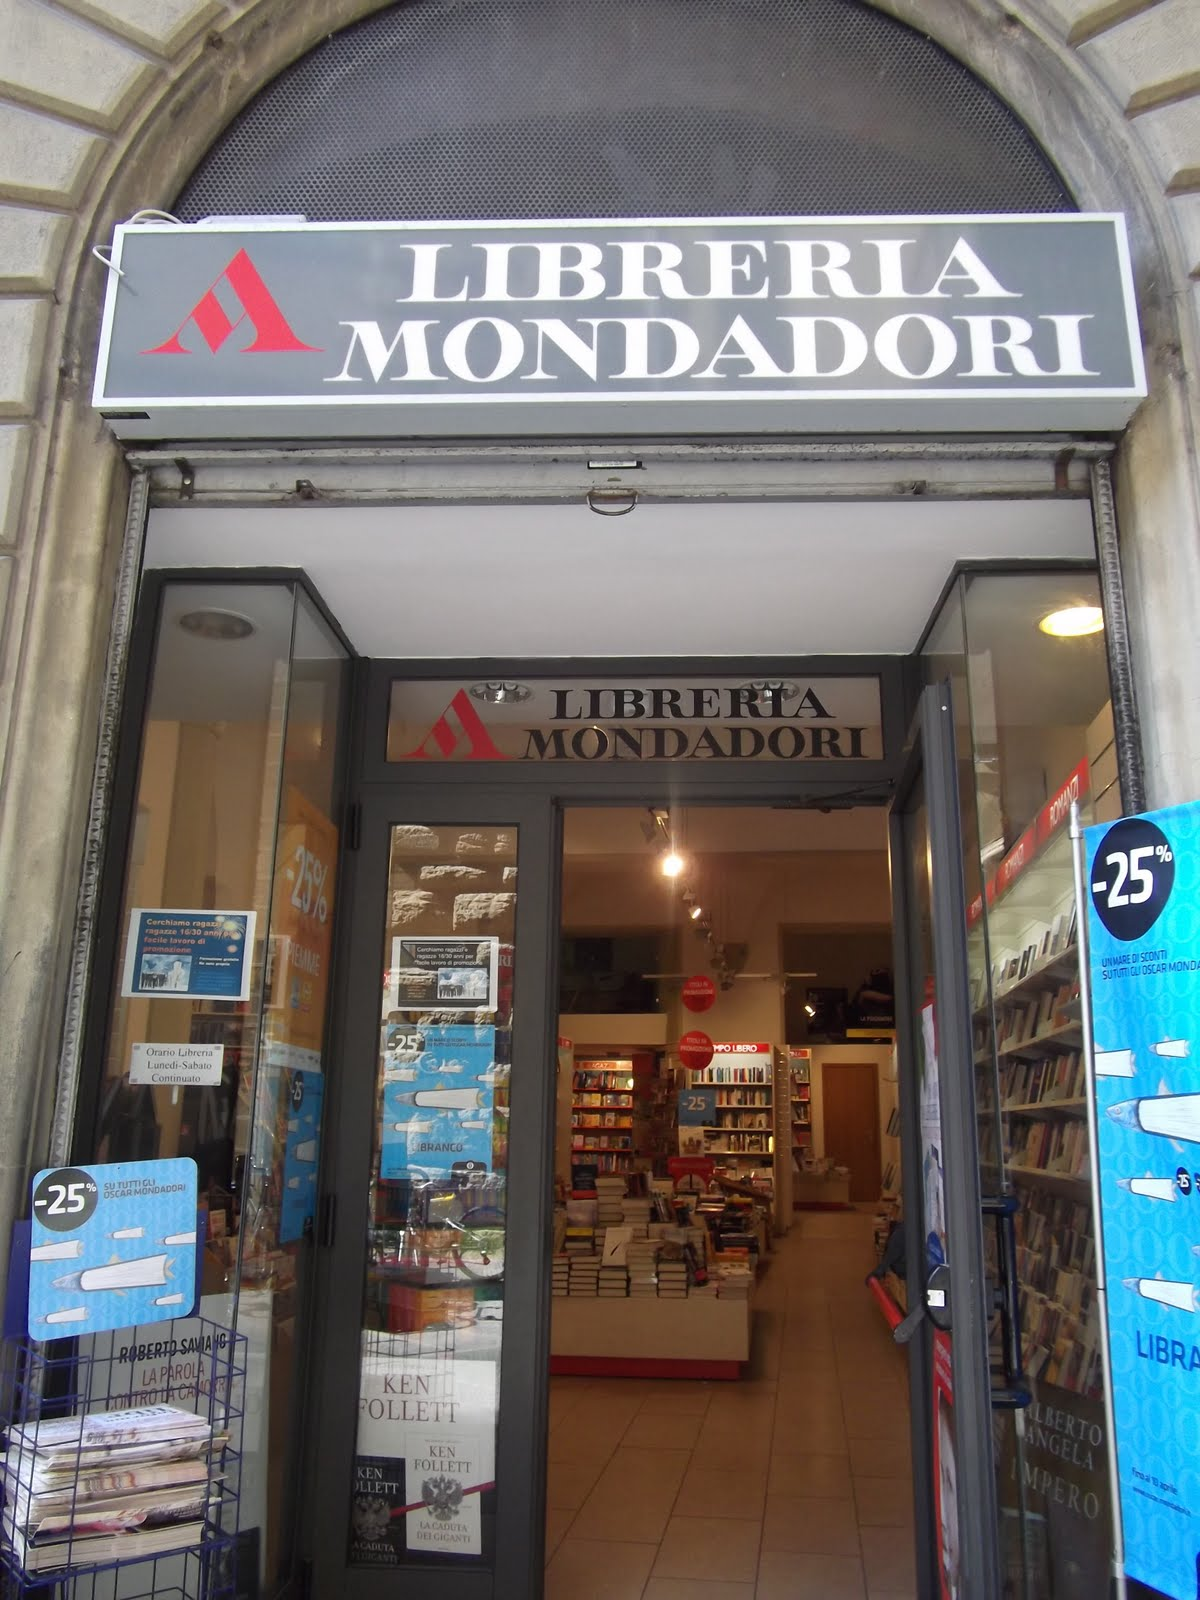 Giunti Al Punto Librerie Italia Choose And Book Bookshops I Came Across In Italy